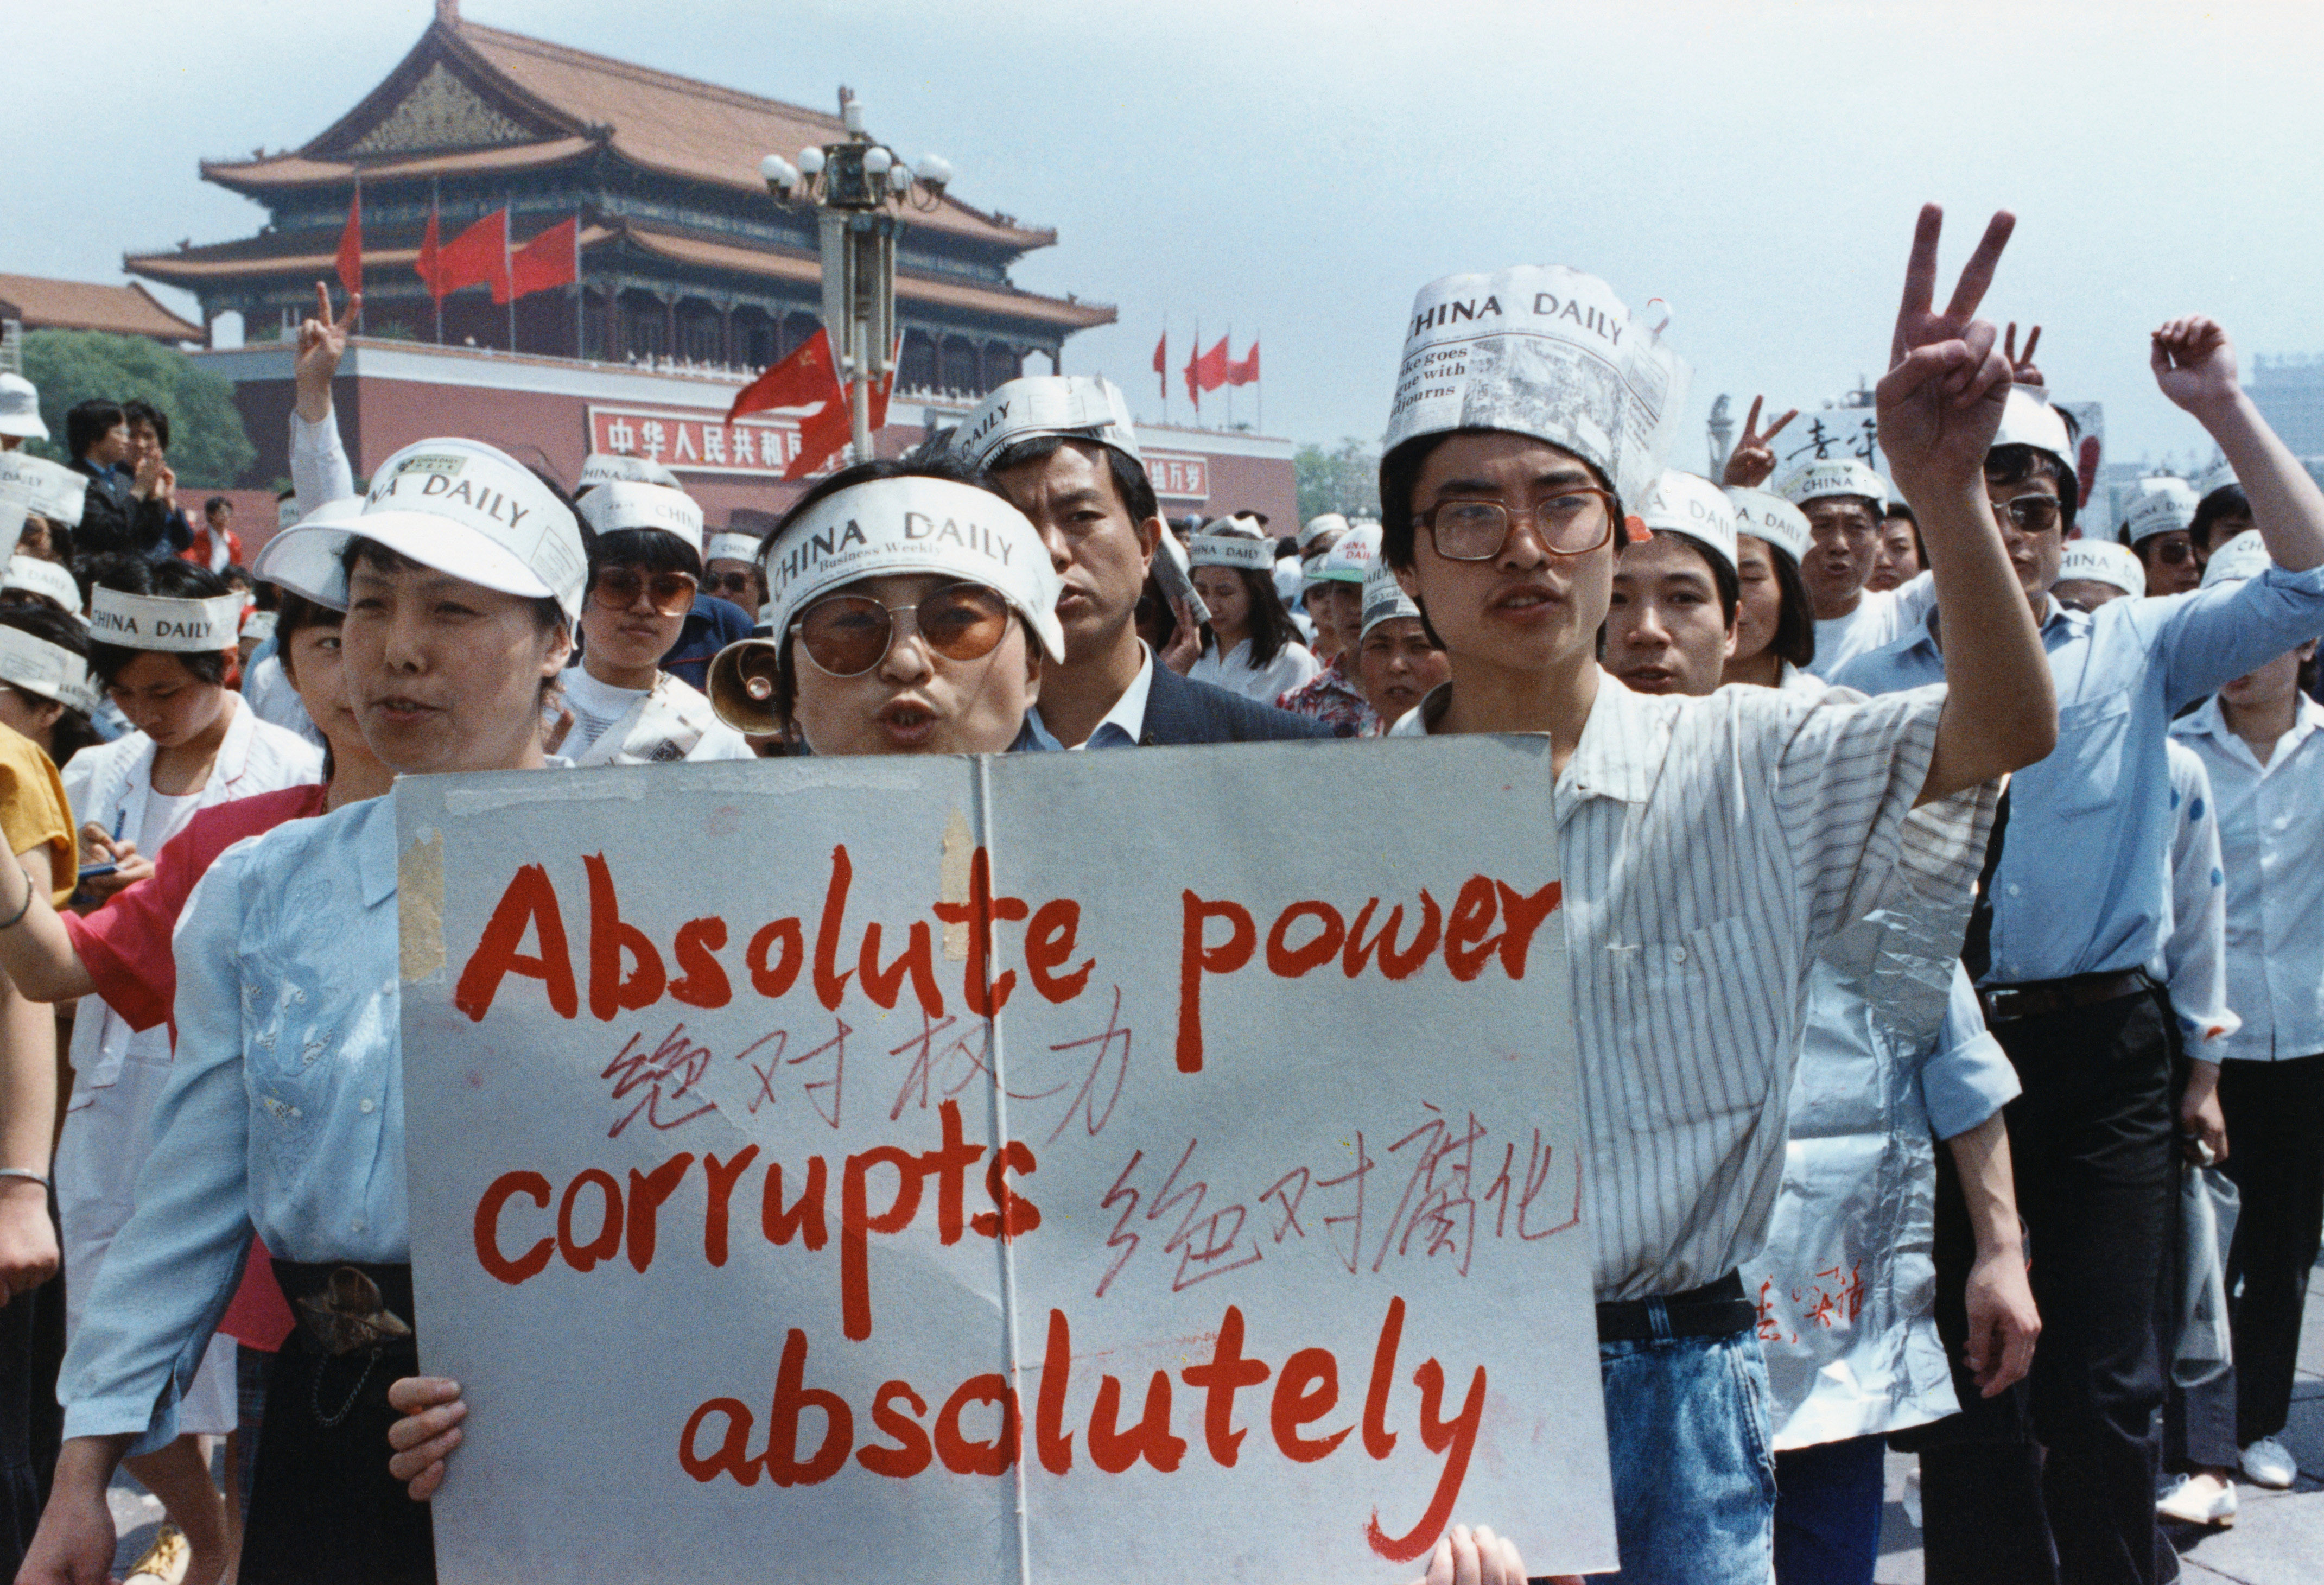 A group of journalists supports the pro-Democracy protest in Tiananmen Square, Peking, China May 17, 1989. REUTERS/Carl Ho PICTURE TAKEN MAY 17, 1989 HIGHEST QUALITY AVAILABLE - RTR1A7TG